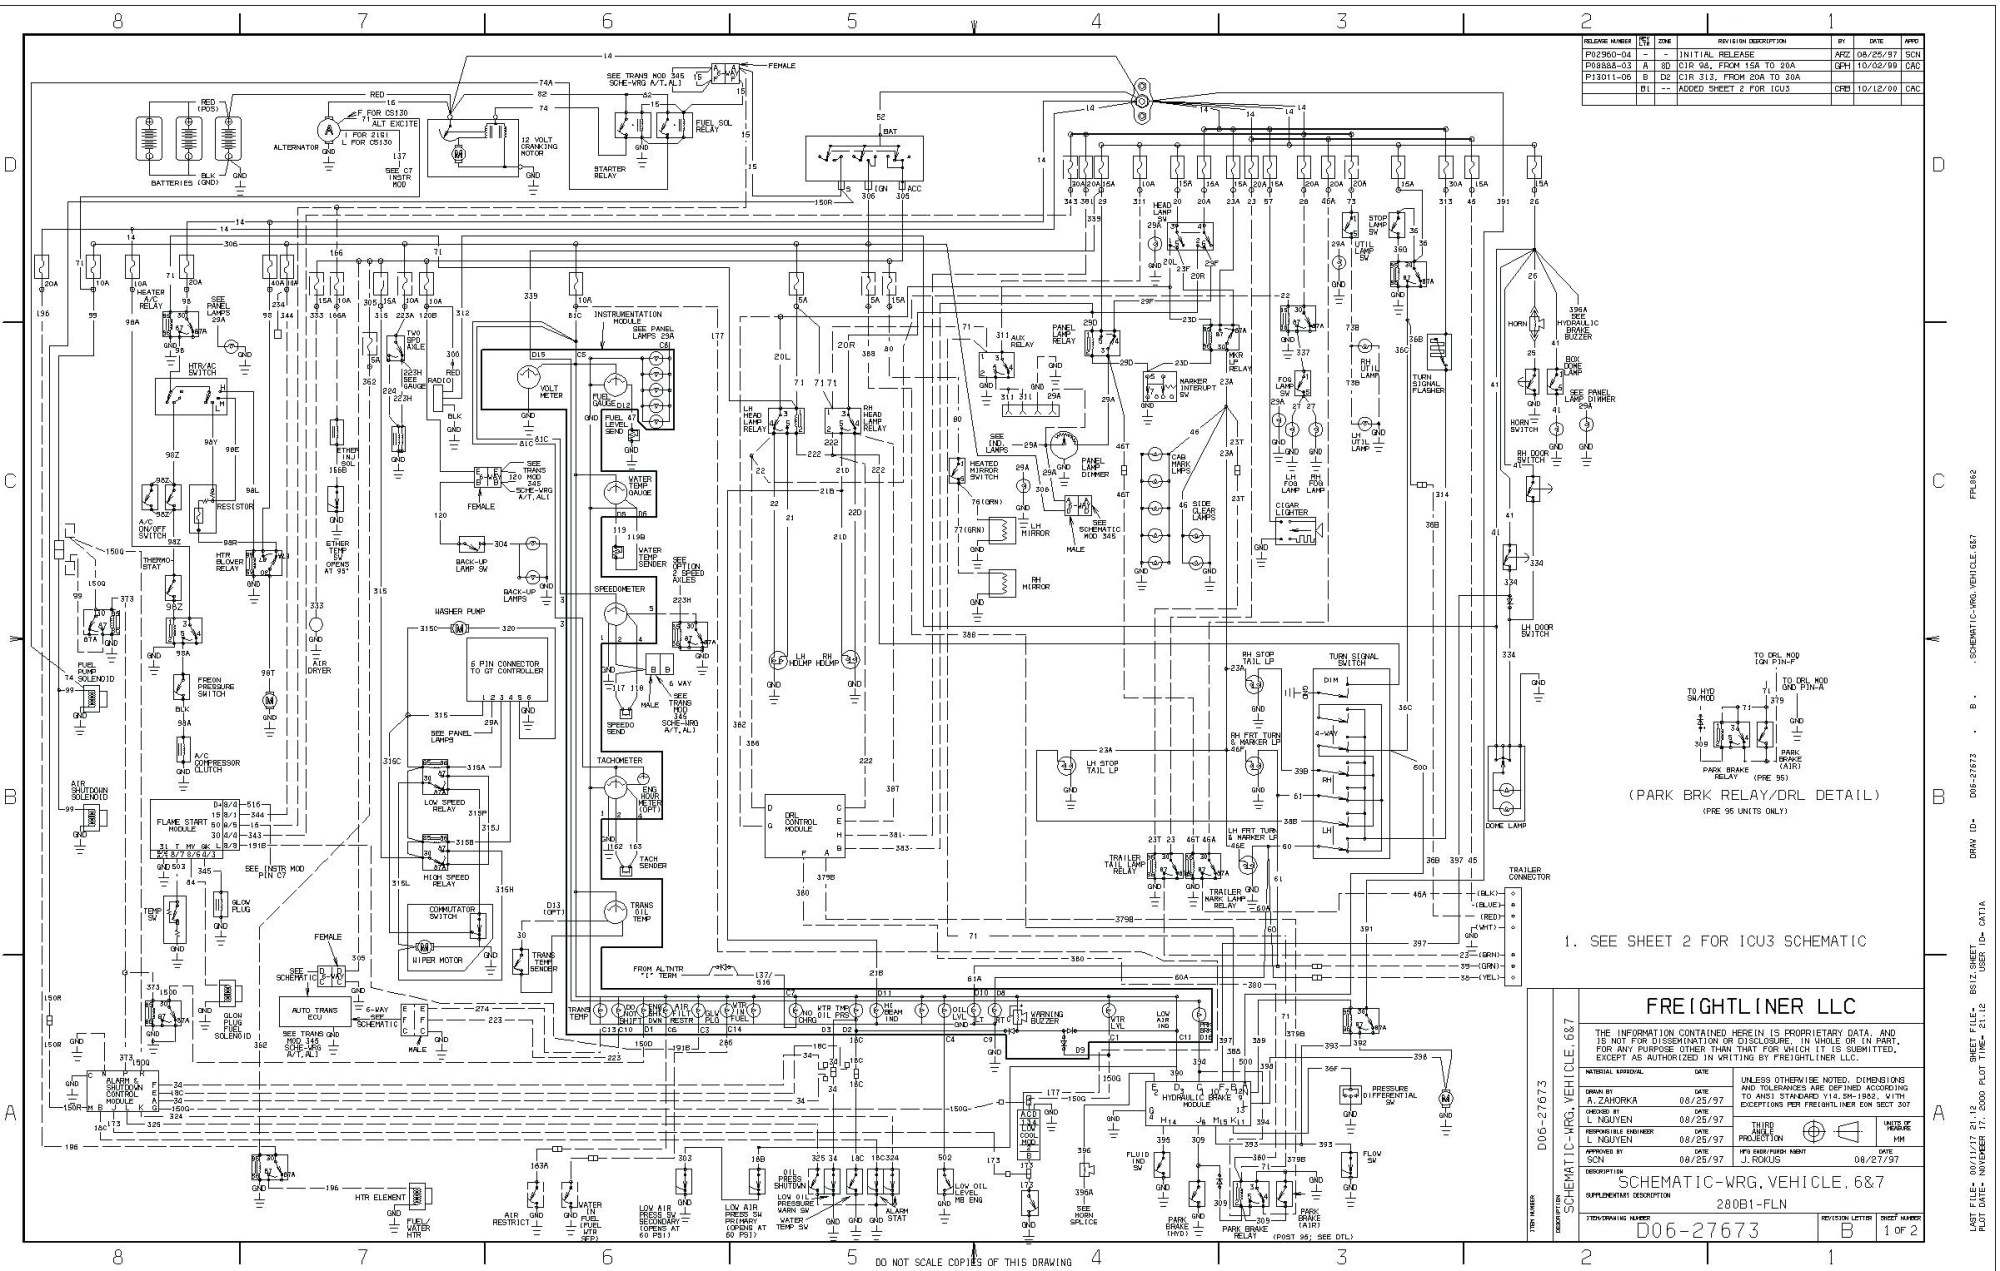 hight resolution of 2001 camry engine diagram 1996 toyota camry le radio wiring diagram ac airflow mode does not 2001 camry engine diagram 4 cylinder